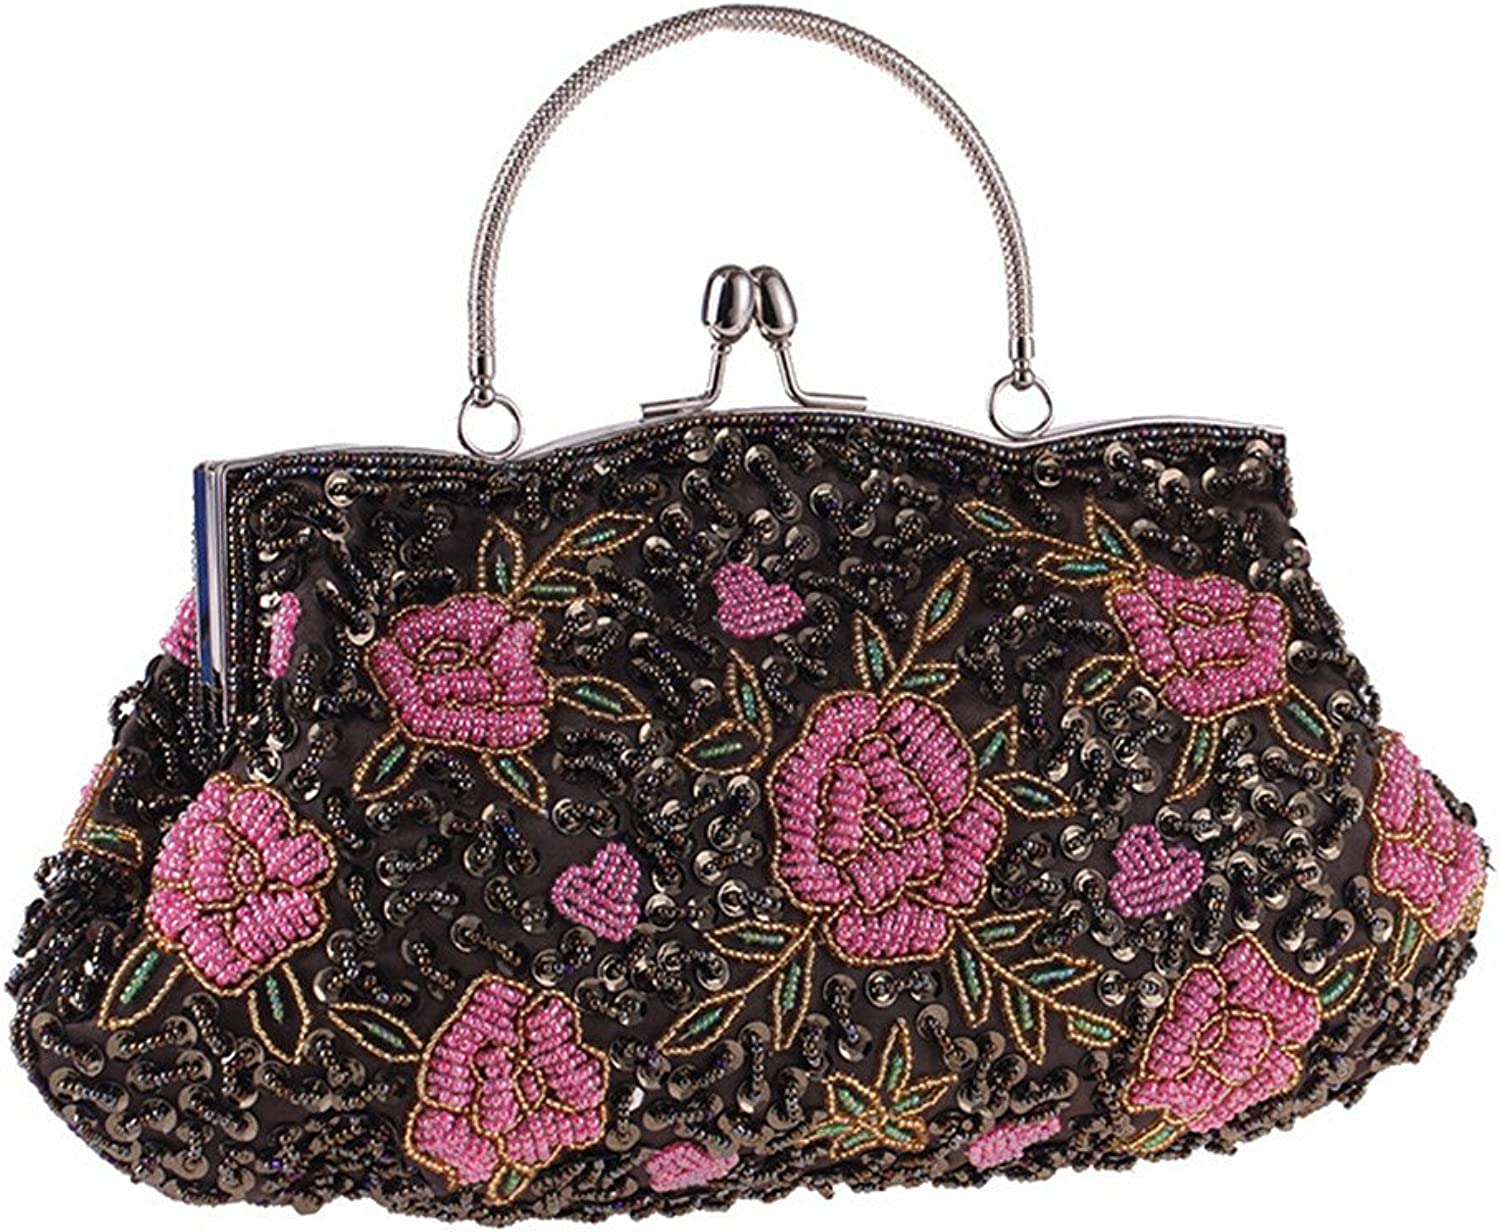 Missfiona Pink pink Jewels Beaded Kissing-Lock Evening Clutch Top-Handle Bag